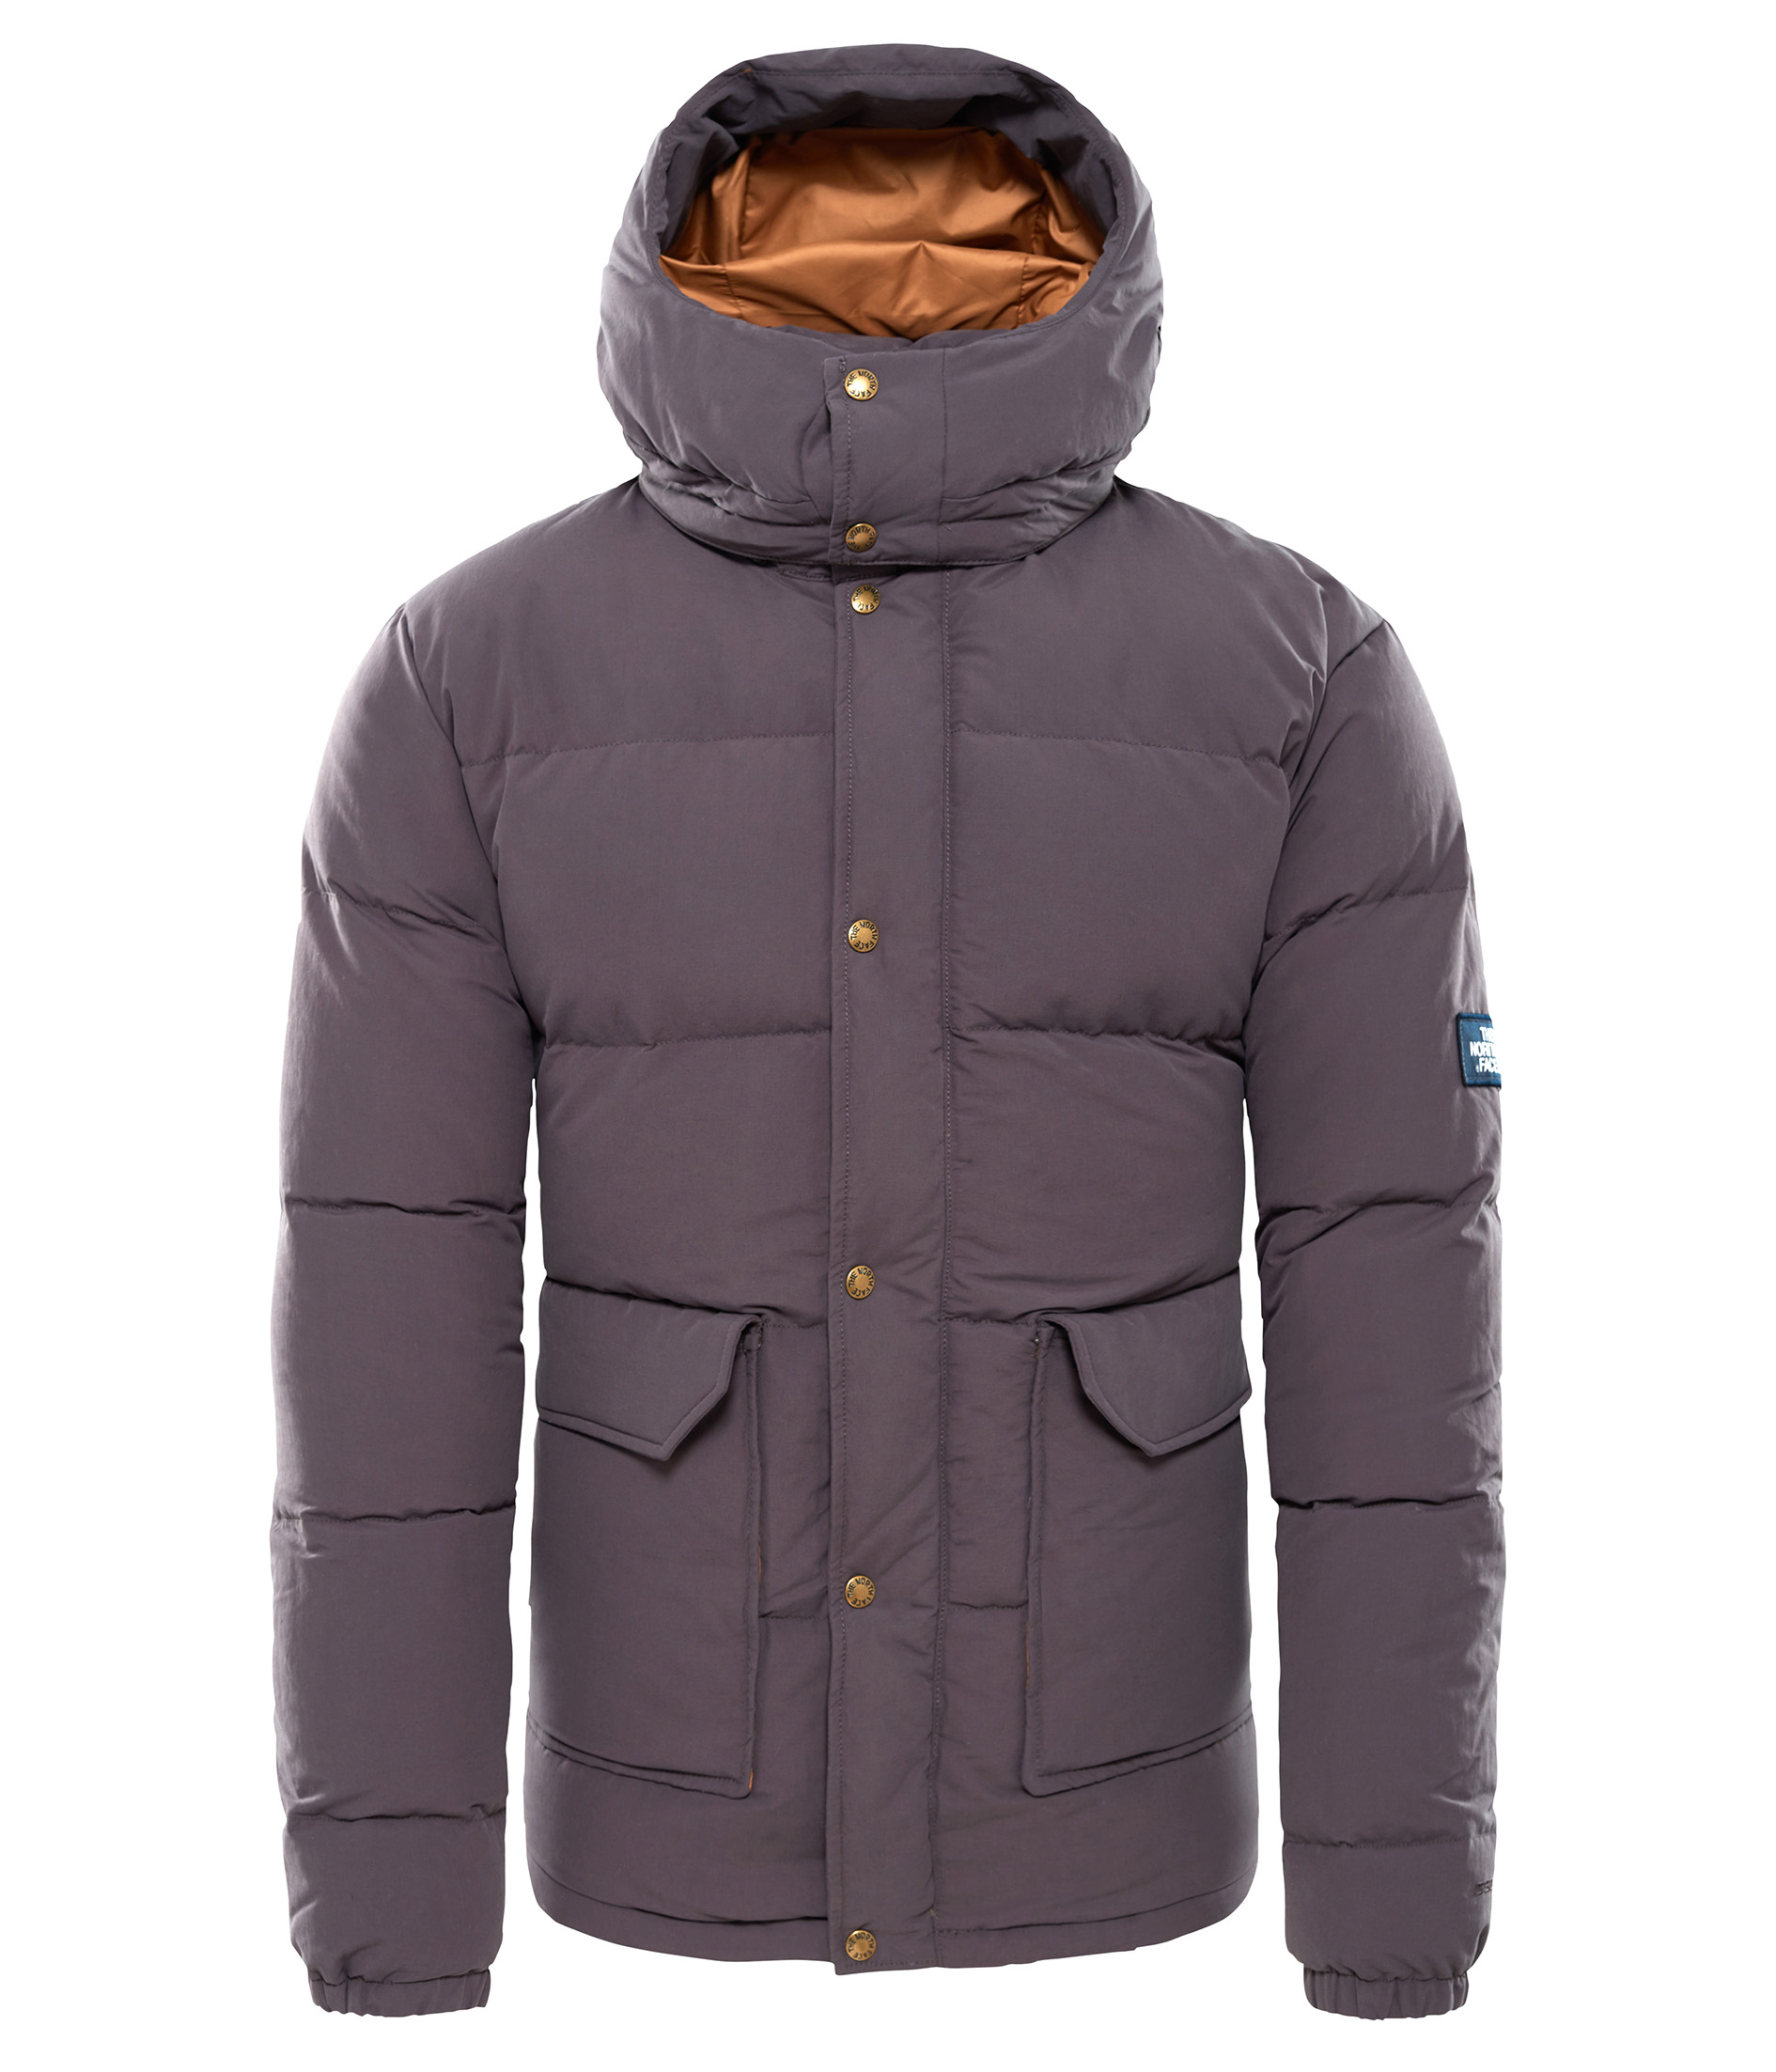 THE NORTH FACE M DOWN SIERRA 2.0 JACKET, WEATHERED BLACK velikost: M